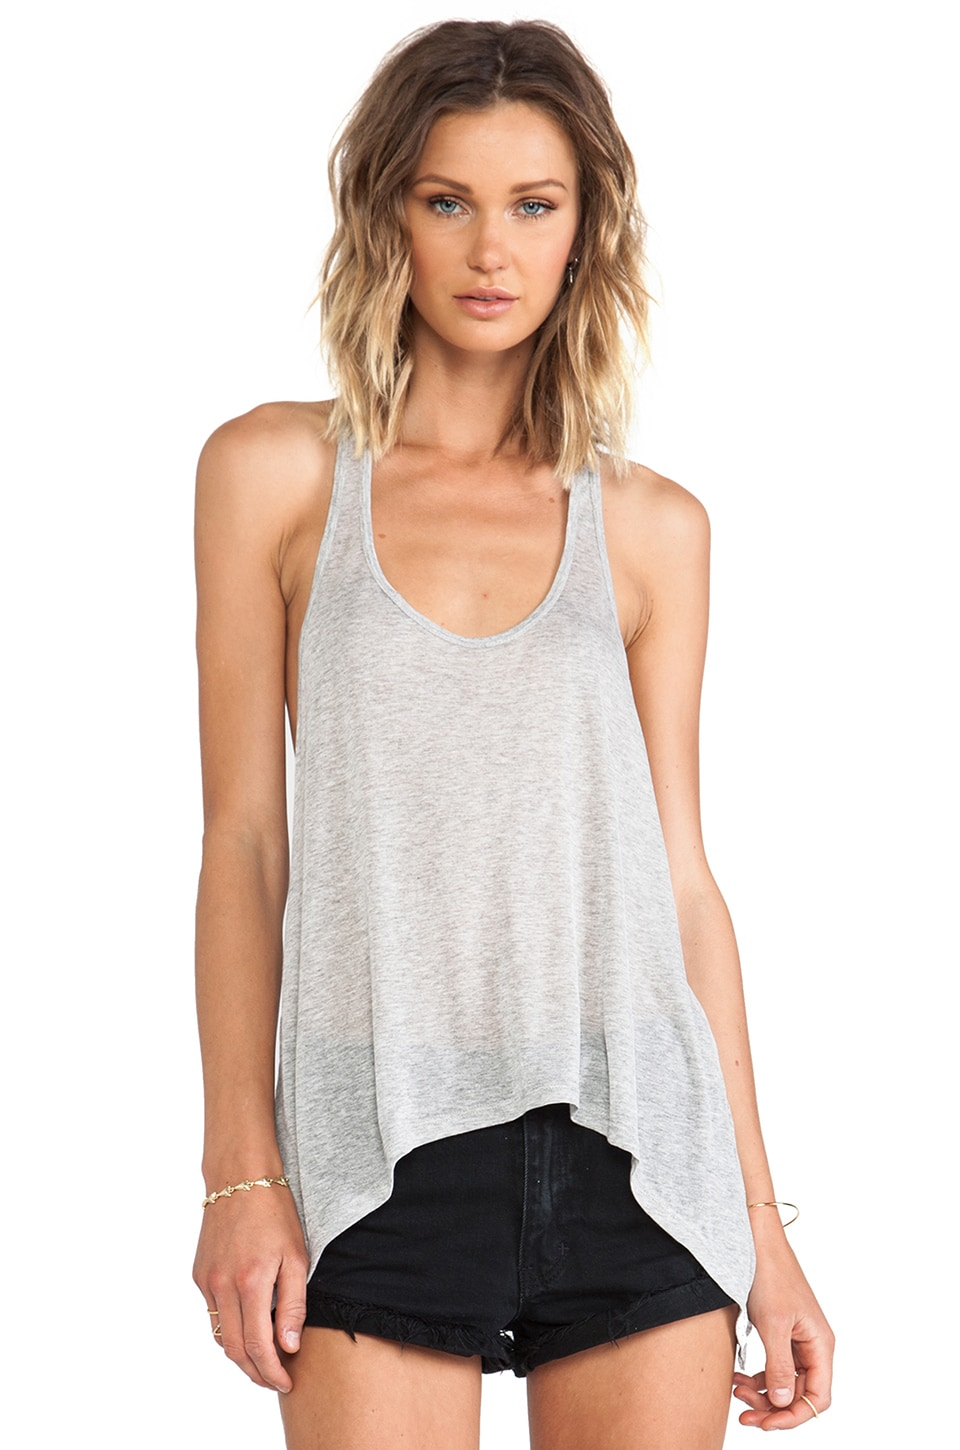 291 Fluid Racer Back Tank in Heather Grey